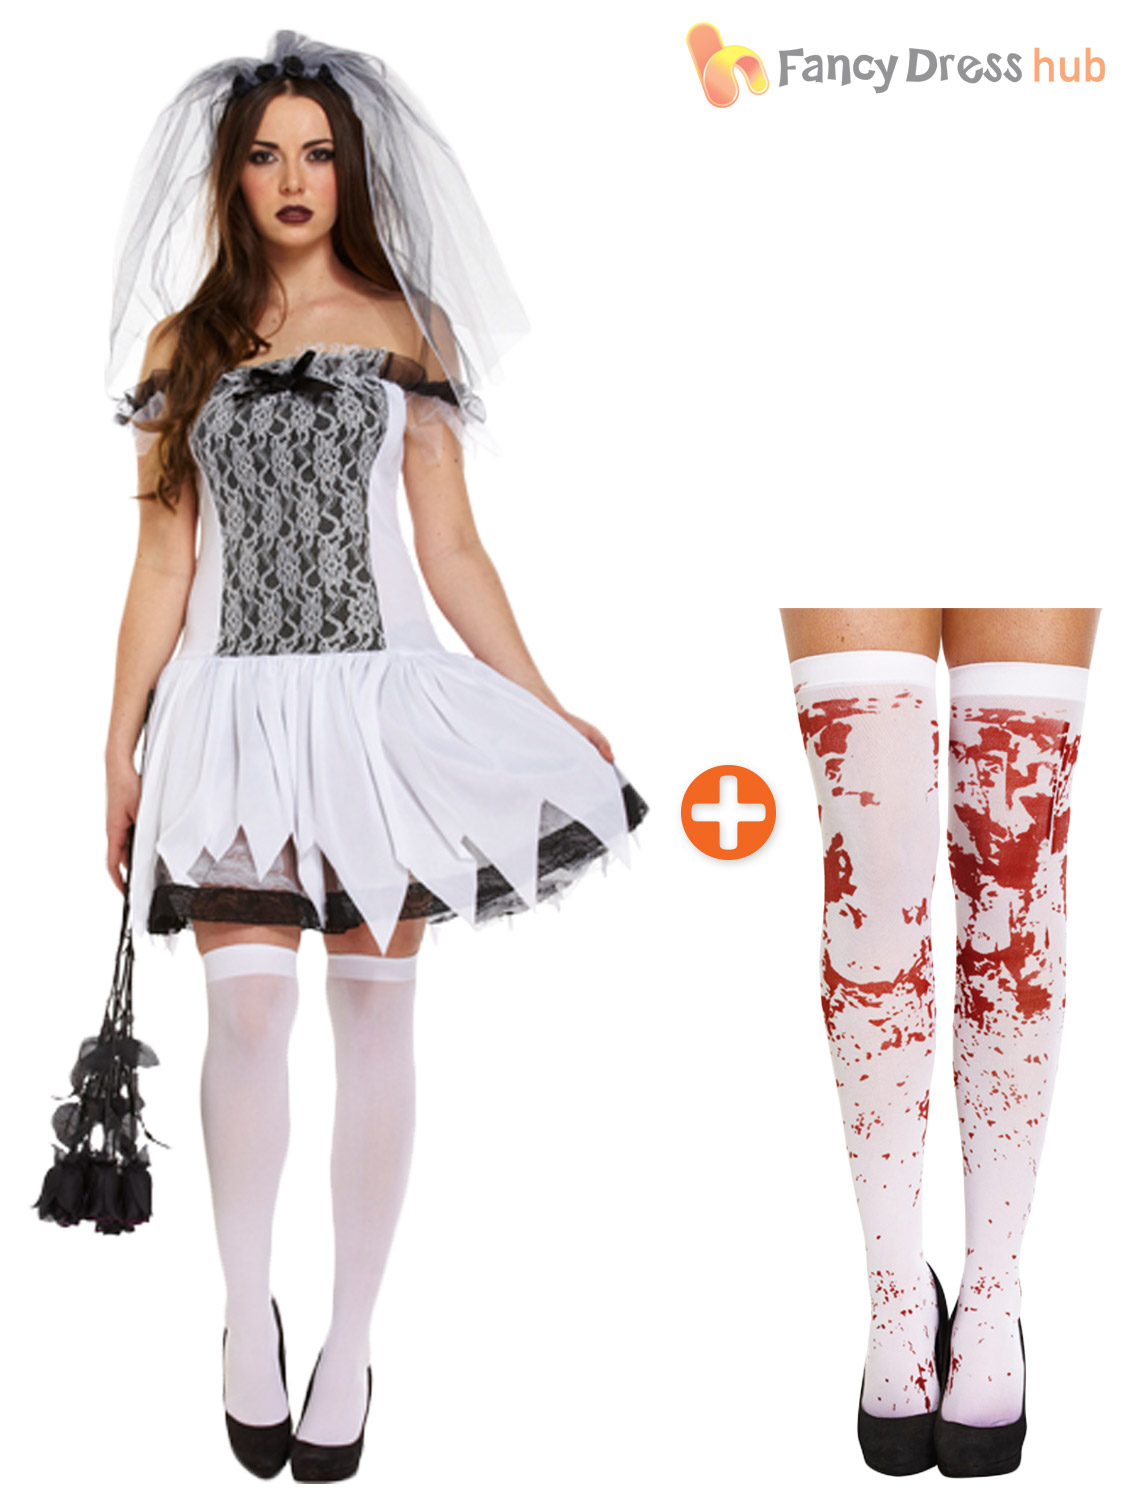 corpse bride fancy dress makeup wedding dress halloween costume Corpse Bride Fancy Dress Wedding Dresses